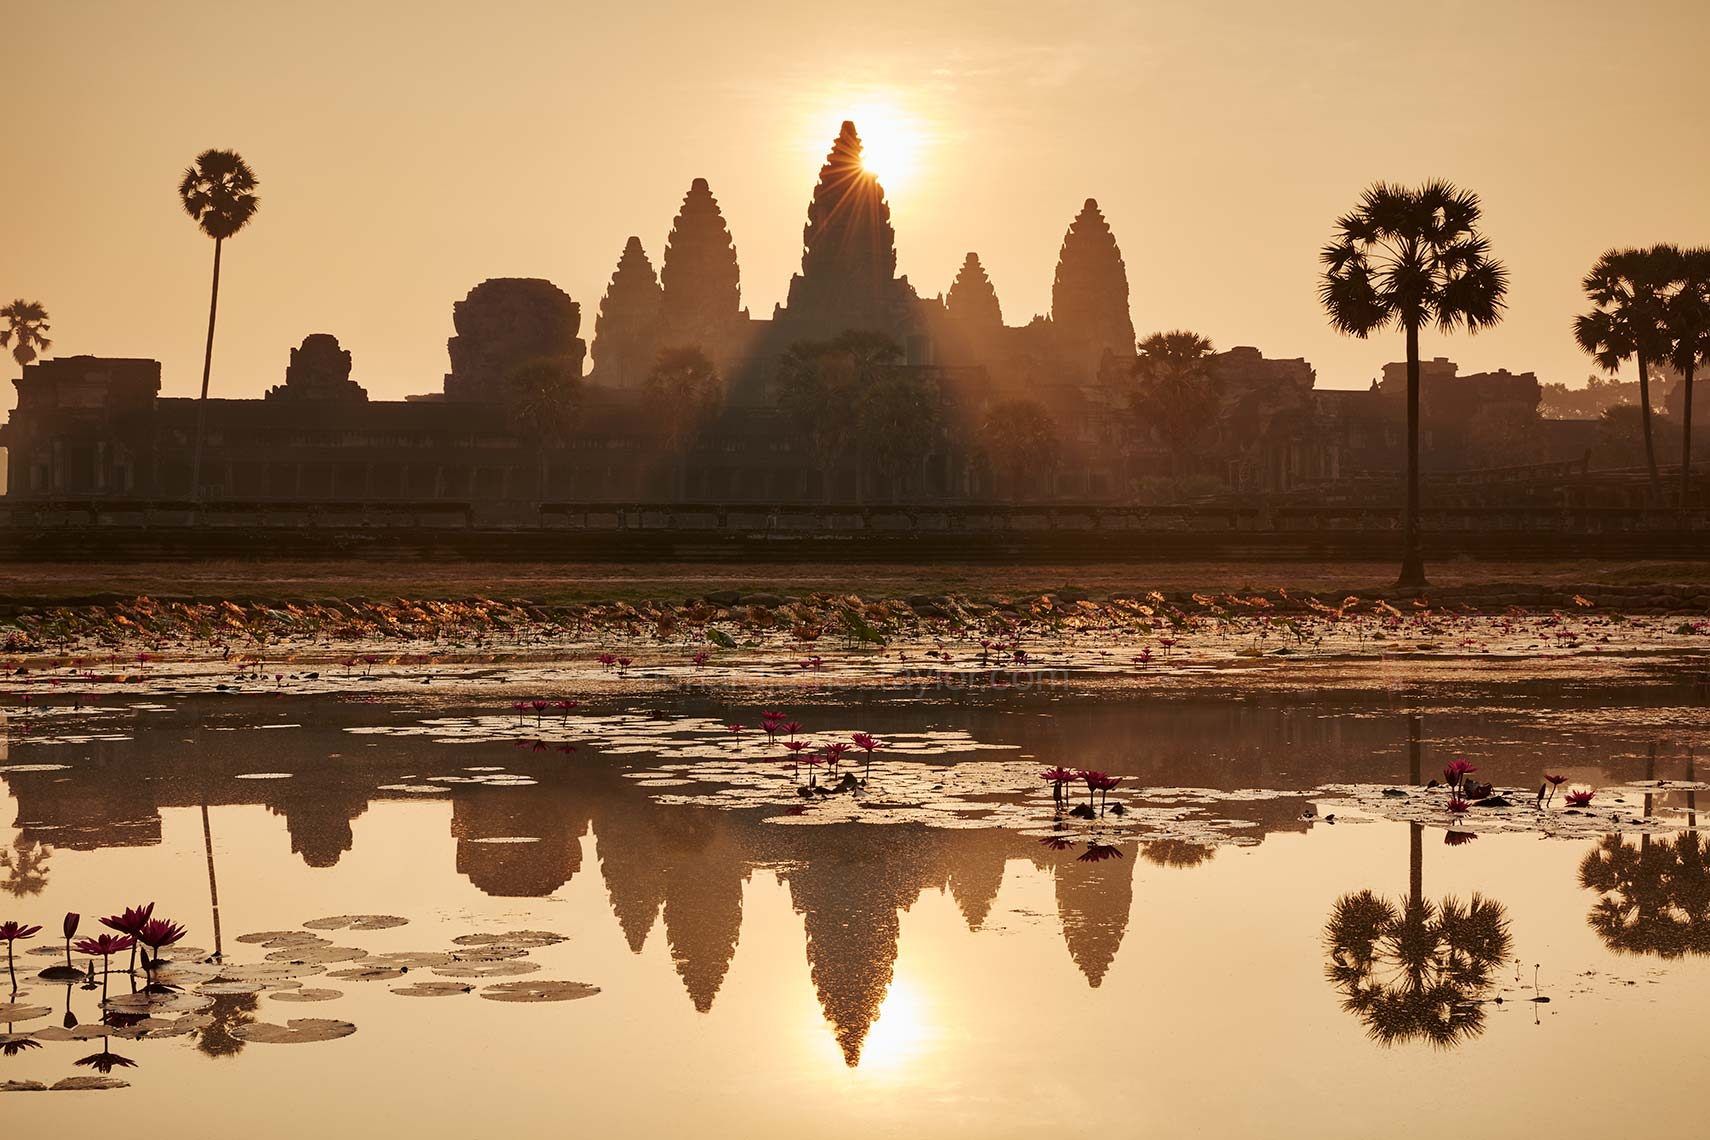 places_siem_reap_angkor_wat_01